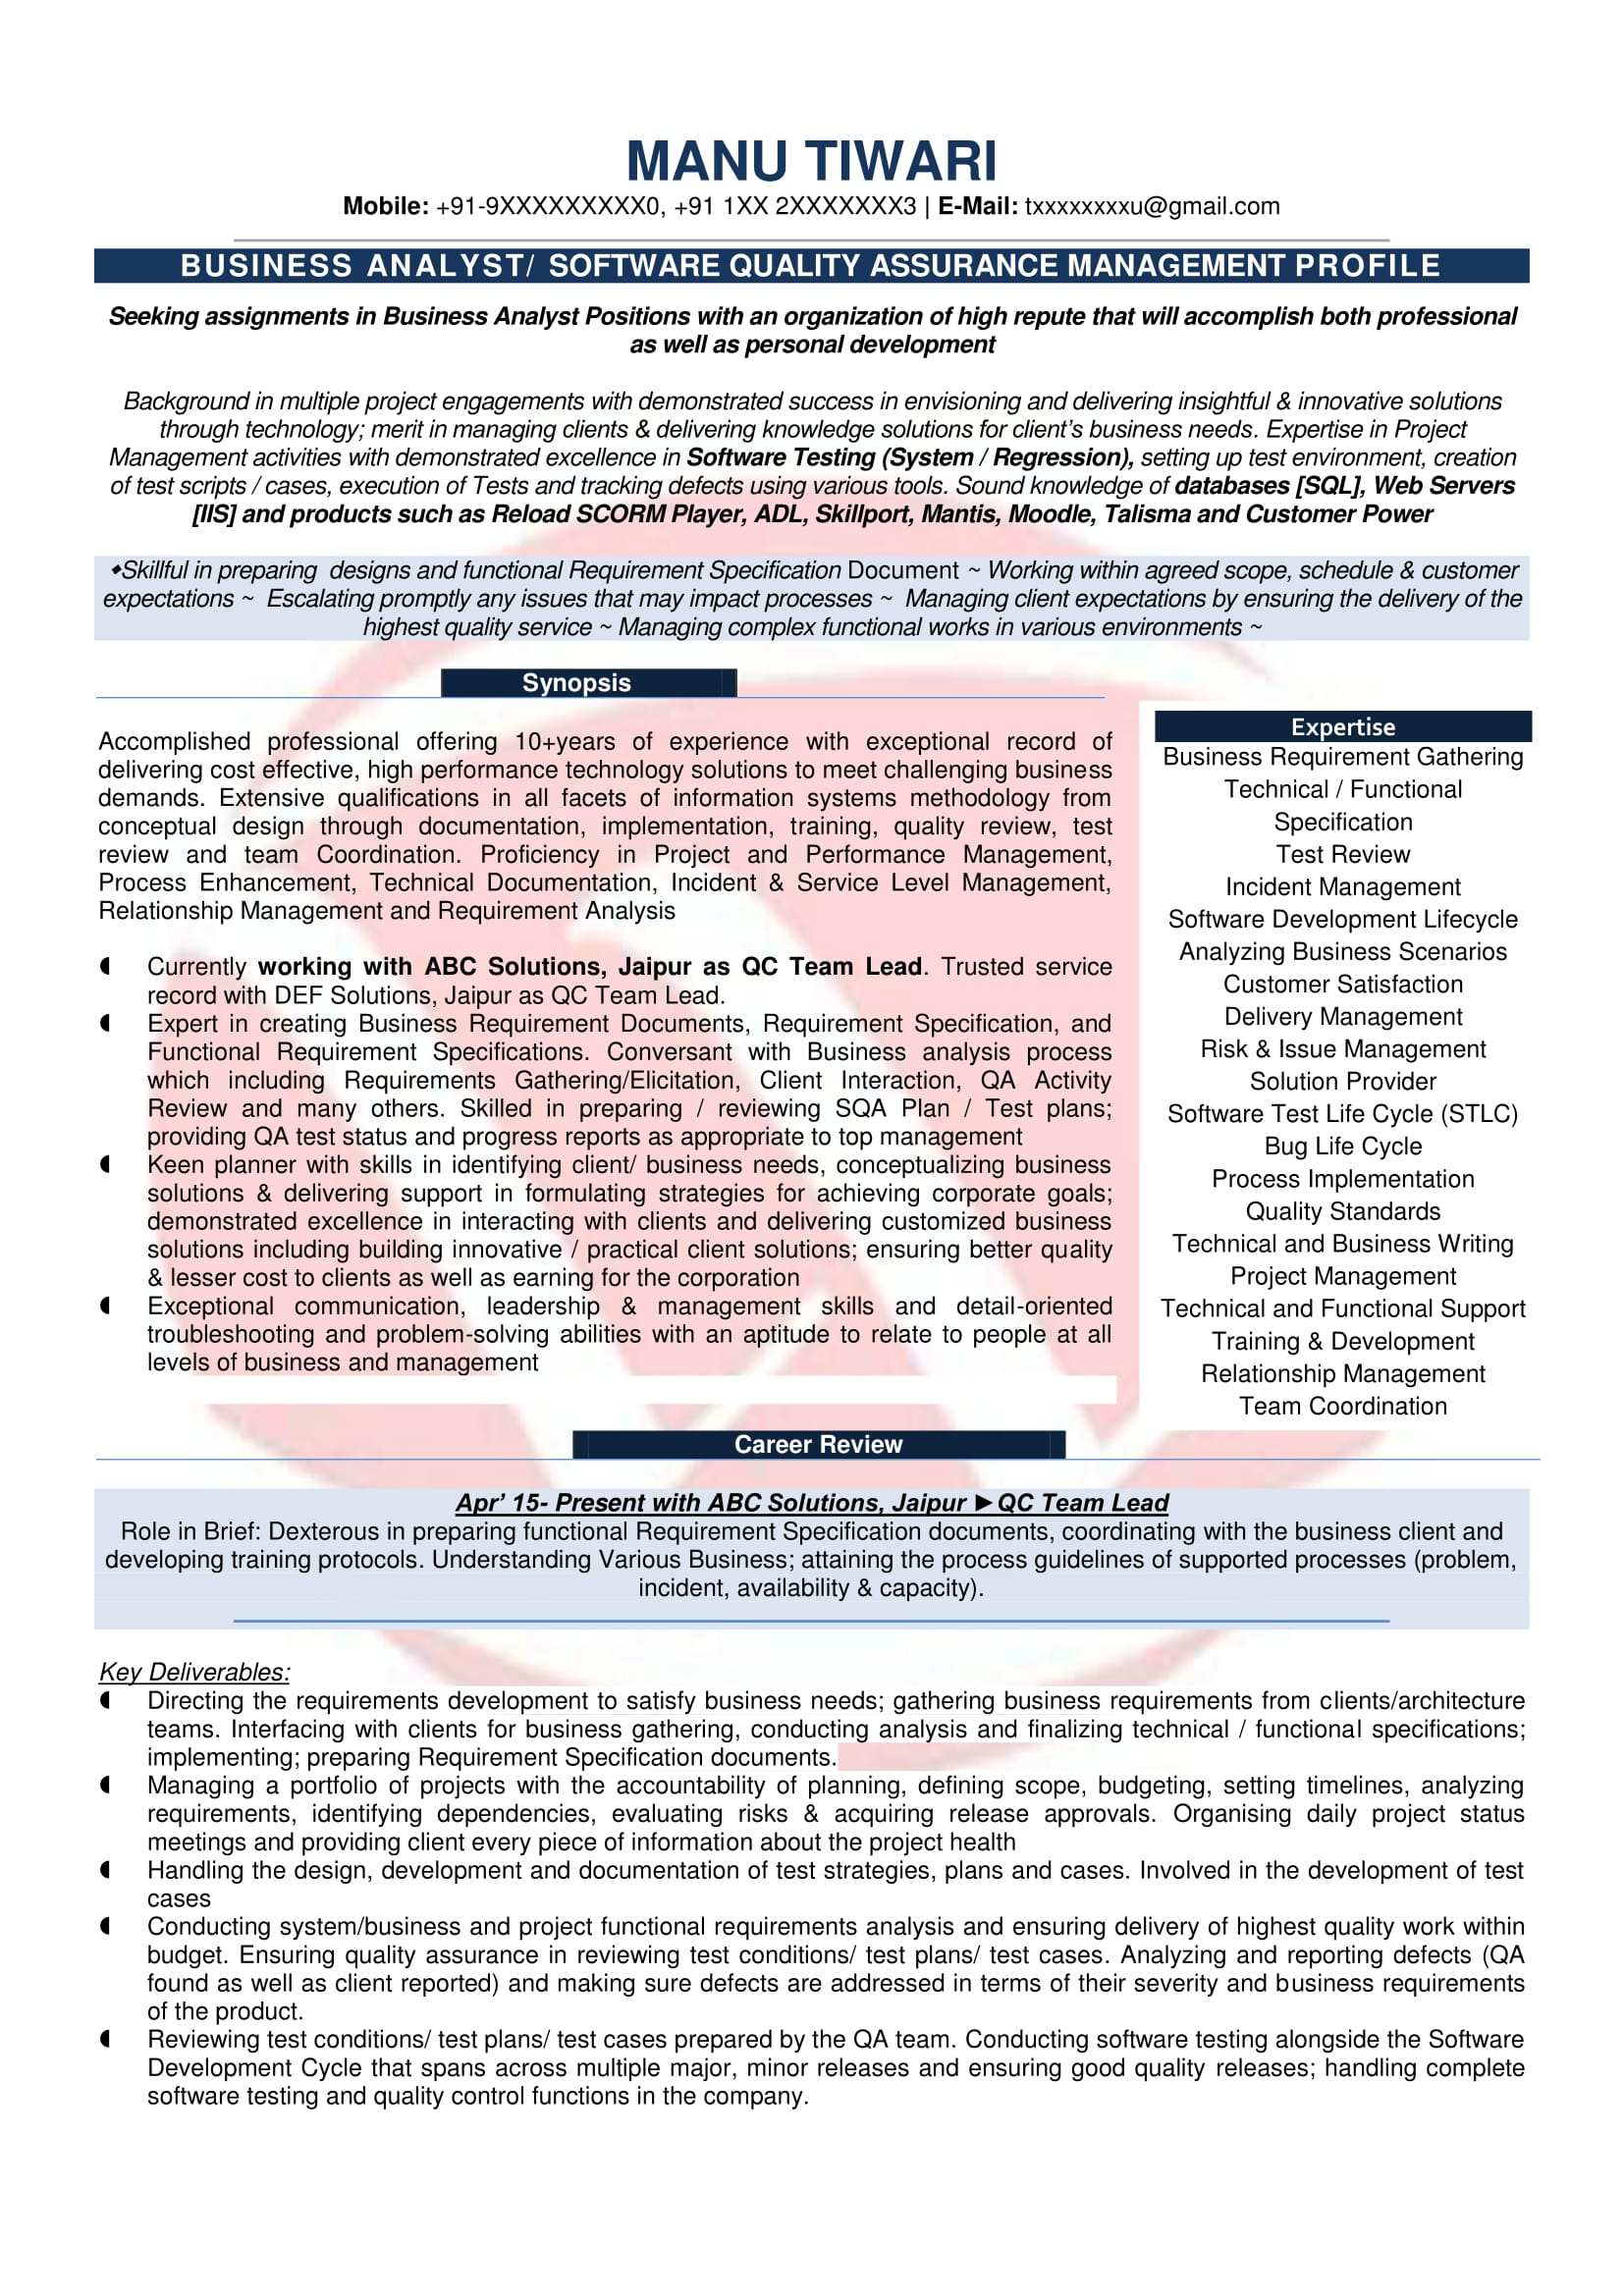 business analyst sample resumes resume format templates for fresher clinical data Resume Resume Format For Business Analyst Fresher